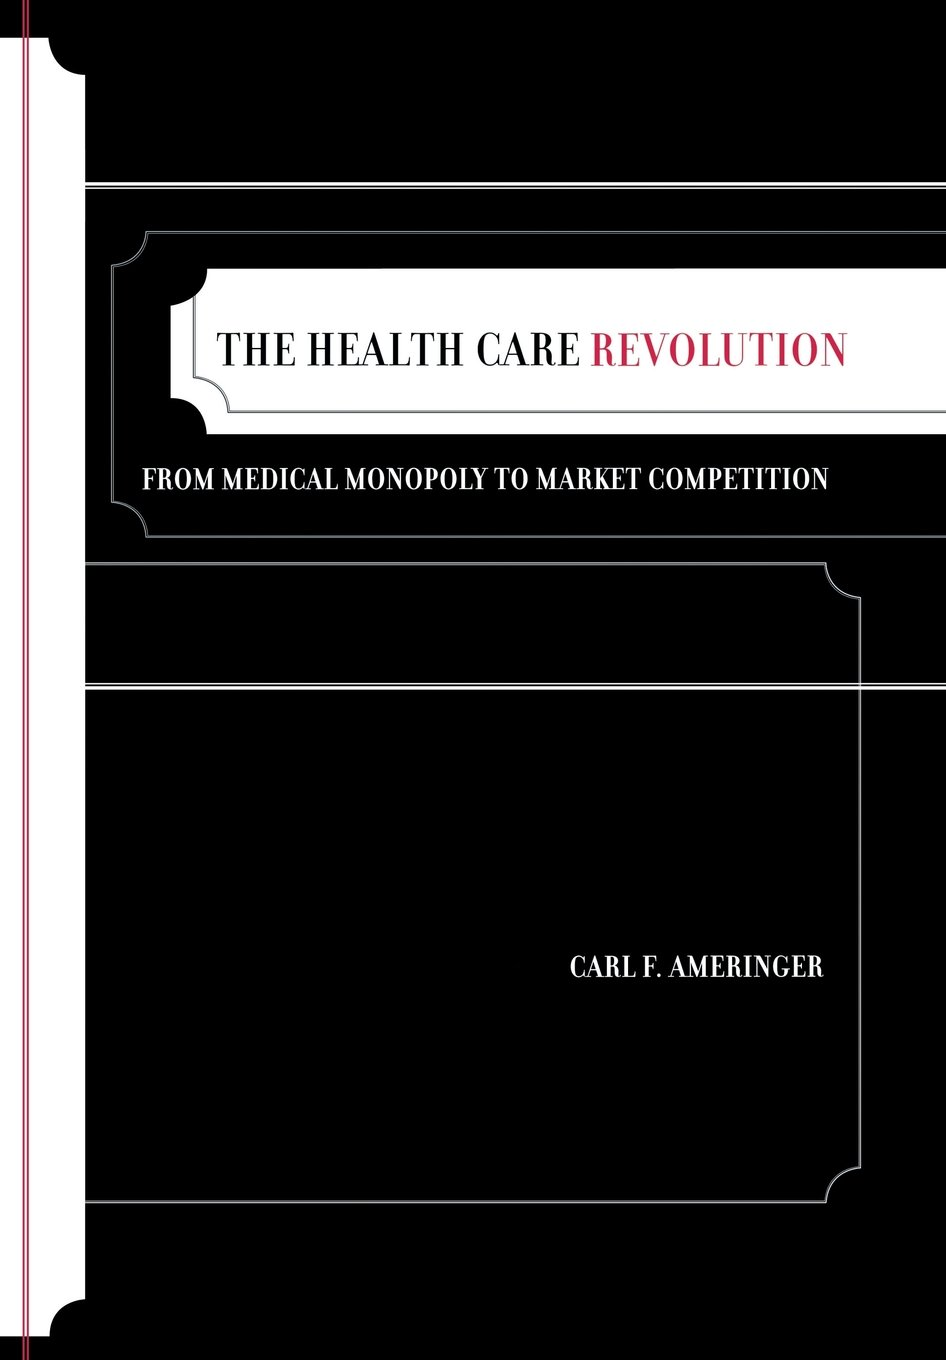 Ameringer, C: Health Care Revolution - From Medical Monopoly: From Medical Monopoly to Market Competition California/Milbank Books on Health and the Public: Amazon.es: Ameringer, Carl F.: Libros en idiomas extranjeros